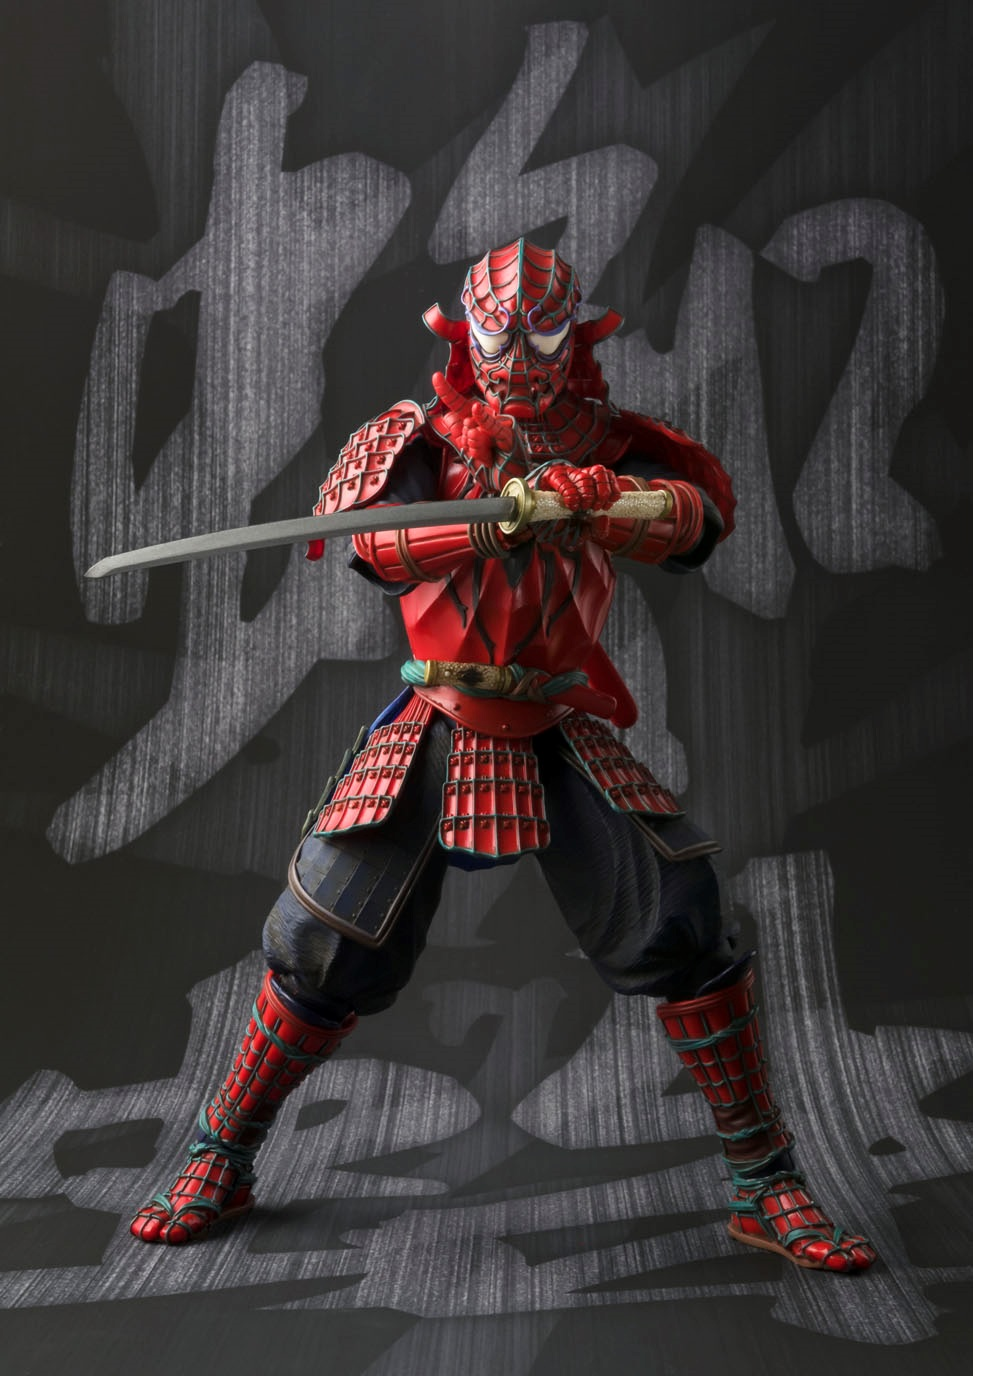 Brand New Spider Man Samurai Realization Figure Is A Must Have